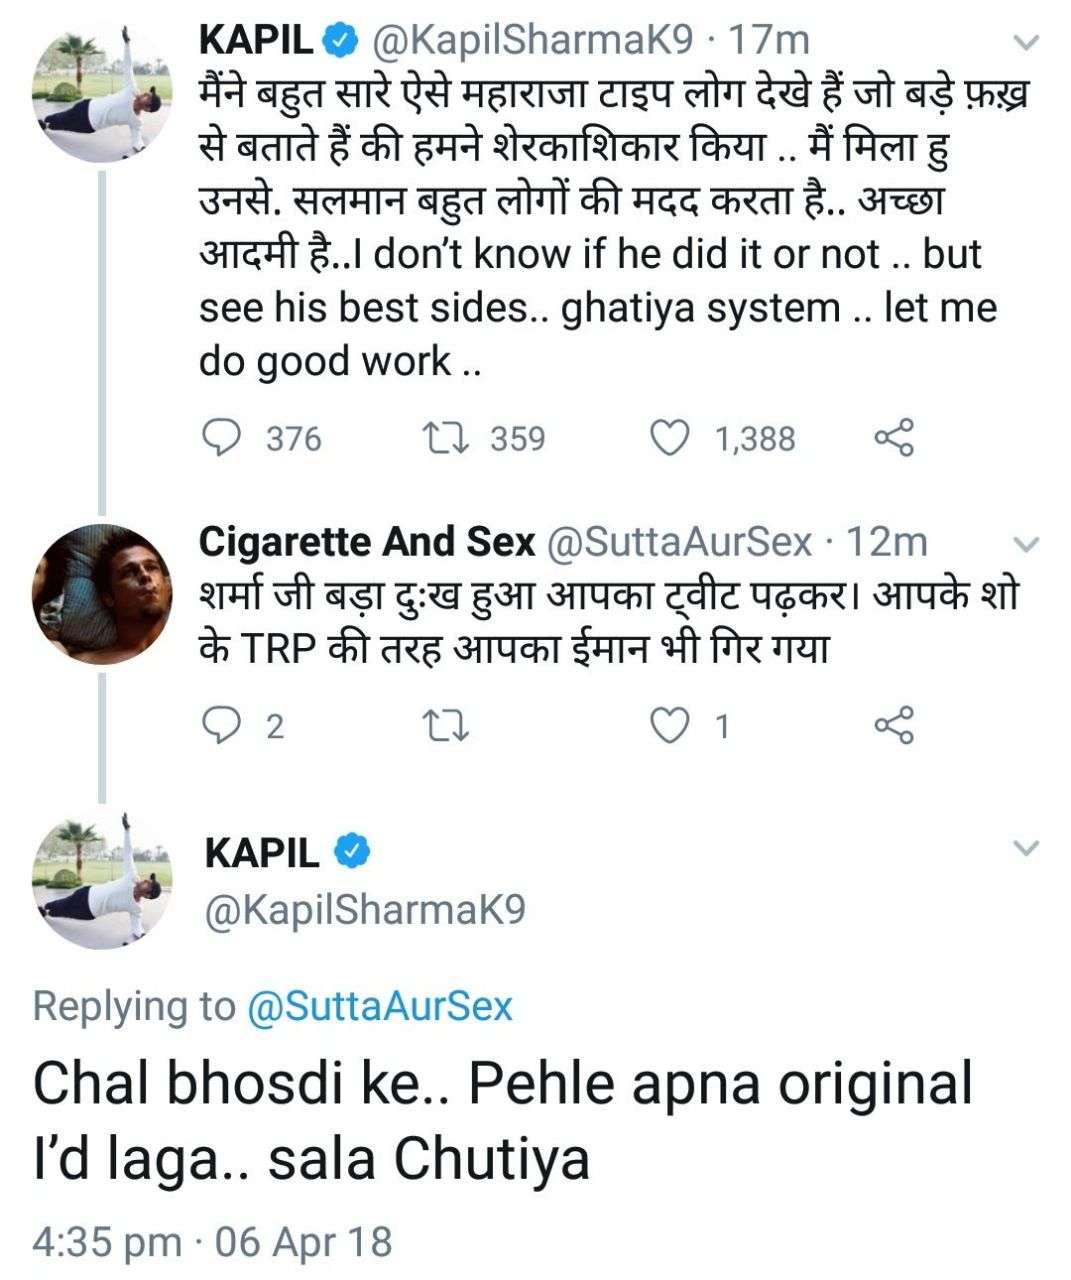 Kapil Sharma Twitter Hacked